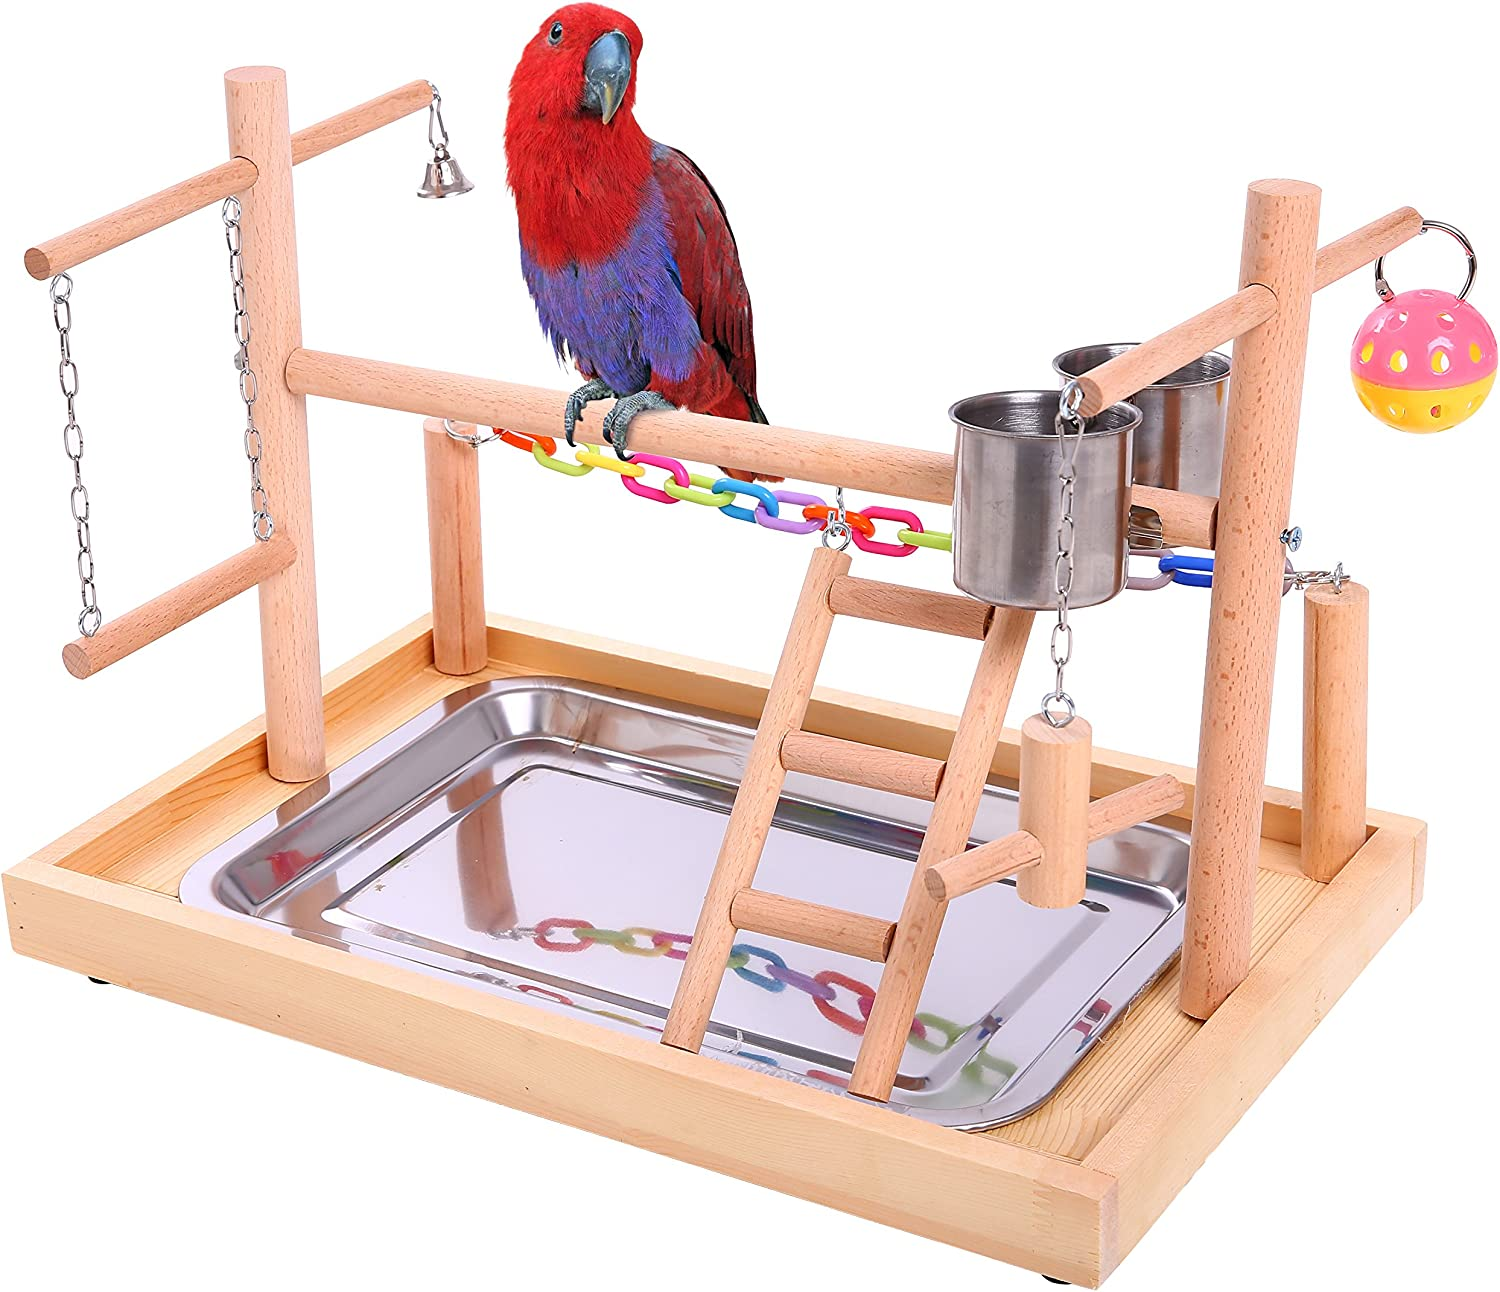 QBLEEV Bird Perches Nest Play Stand Gym Parrot Playground Playgym Playpen Playstand Swing Bridge Wood Climb Ladders Wooden Conures Parakeet Macaw African